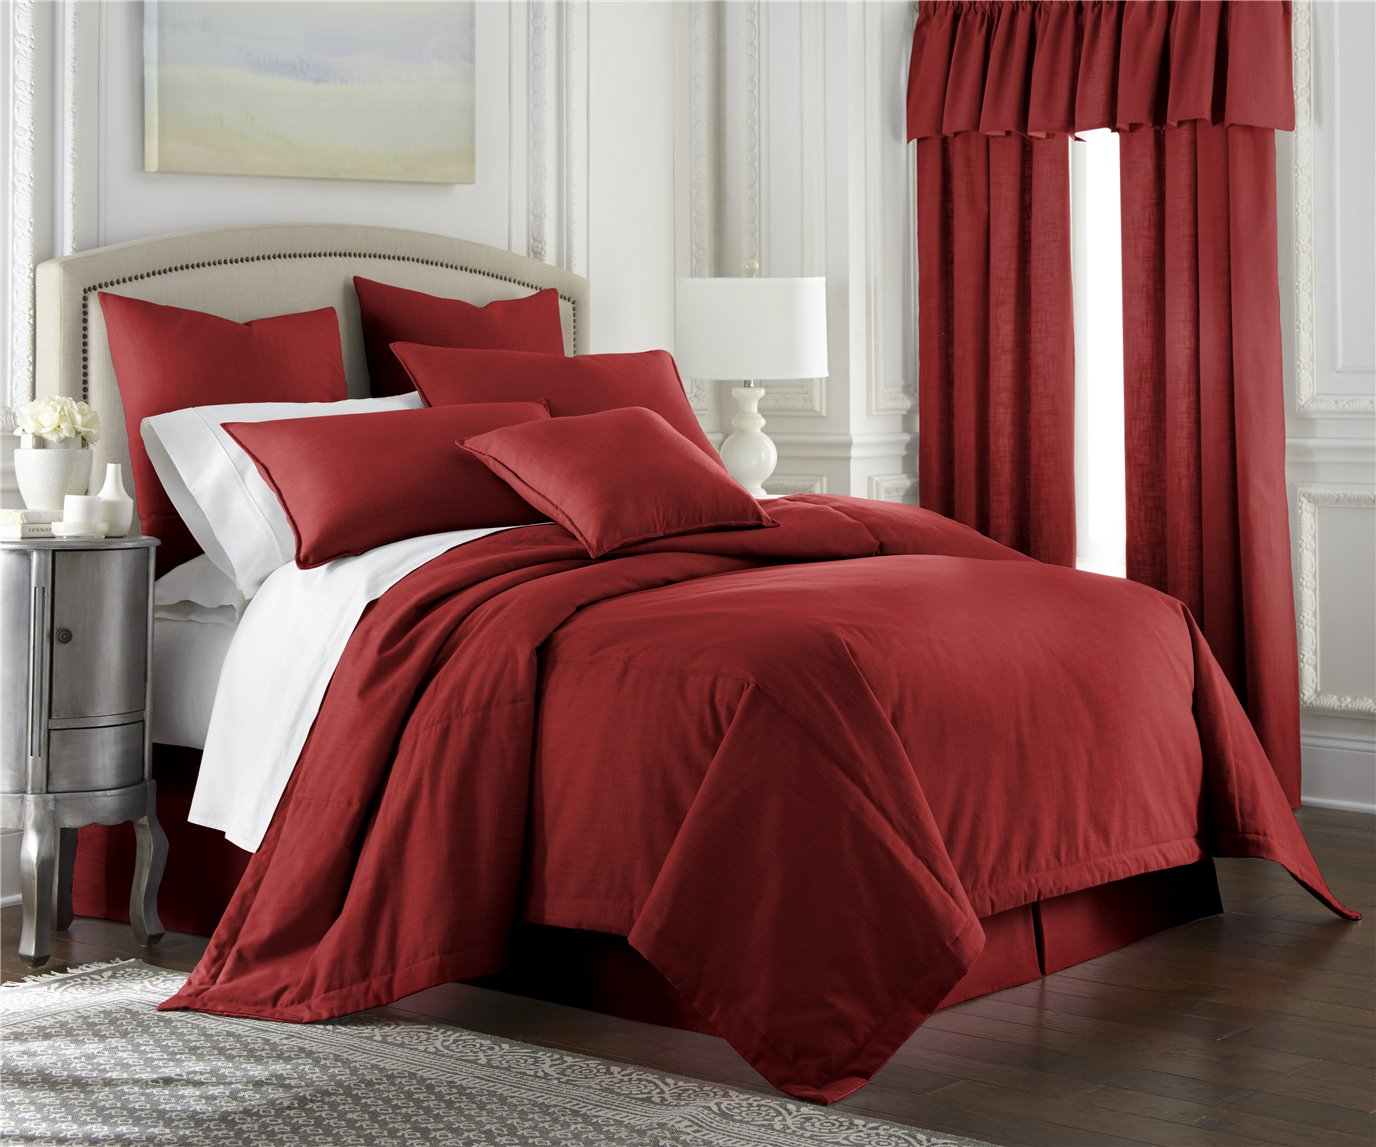 Cambric Red Comforter King